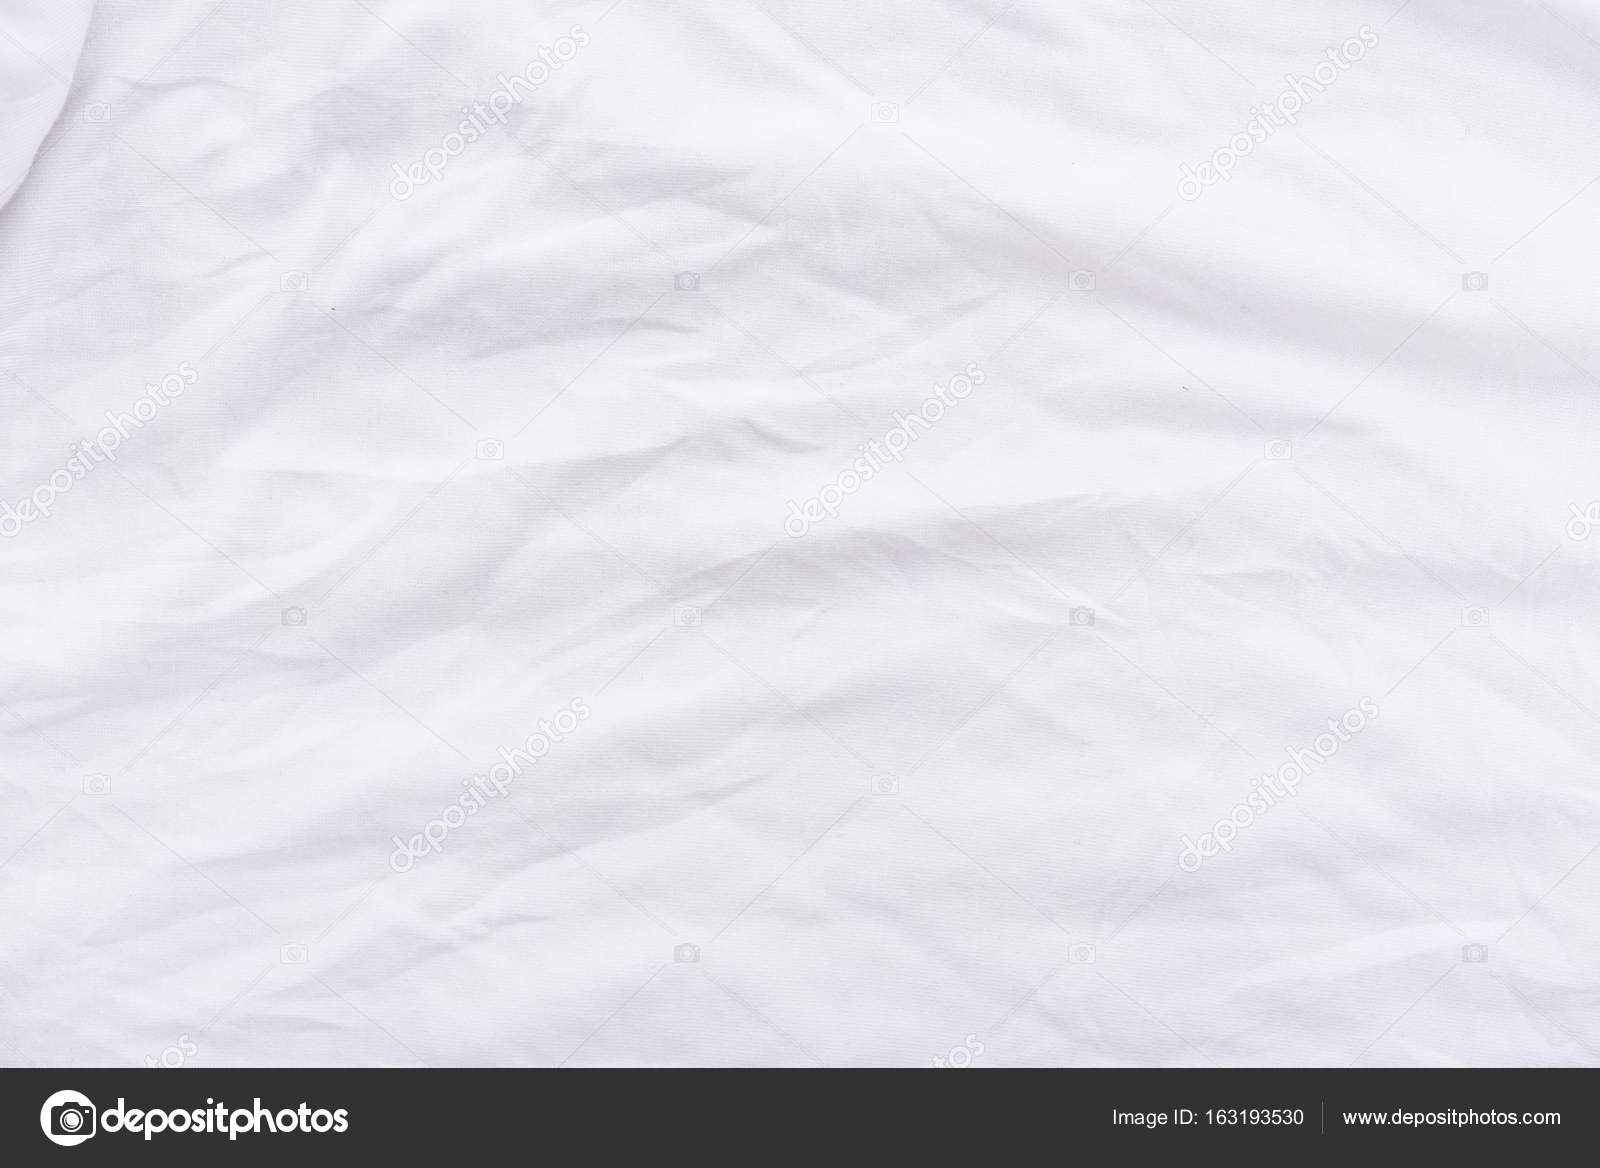 white bed sheet texture. close old dirty wrinkled white bedsheet fabric texture background \u2014 stock photo bed sheet